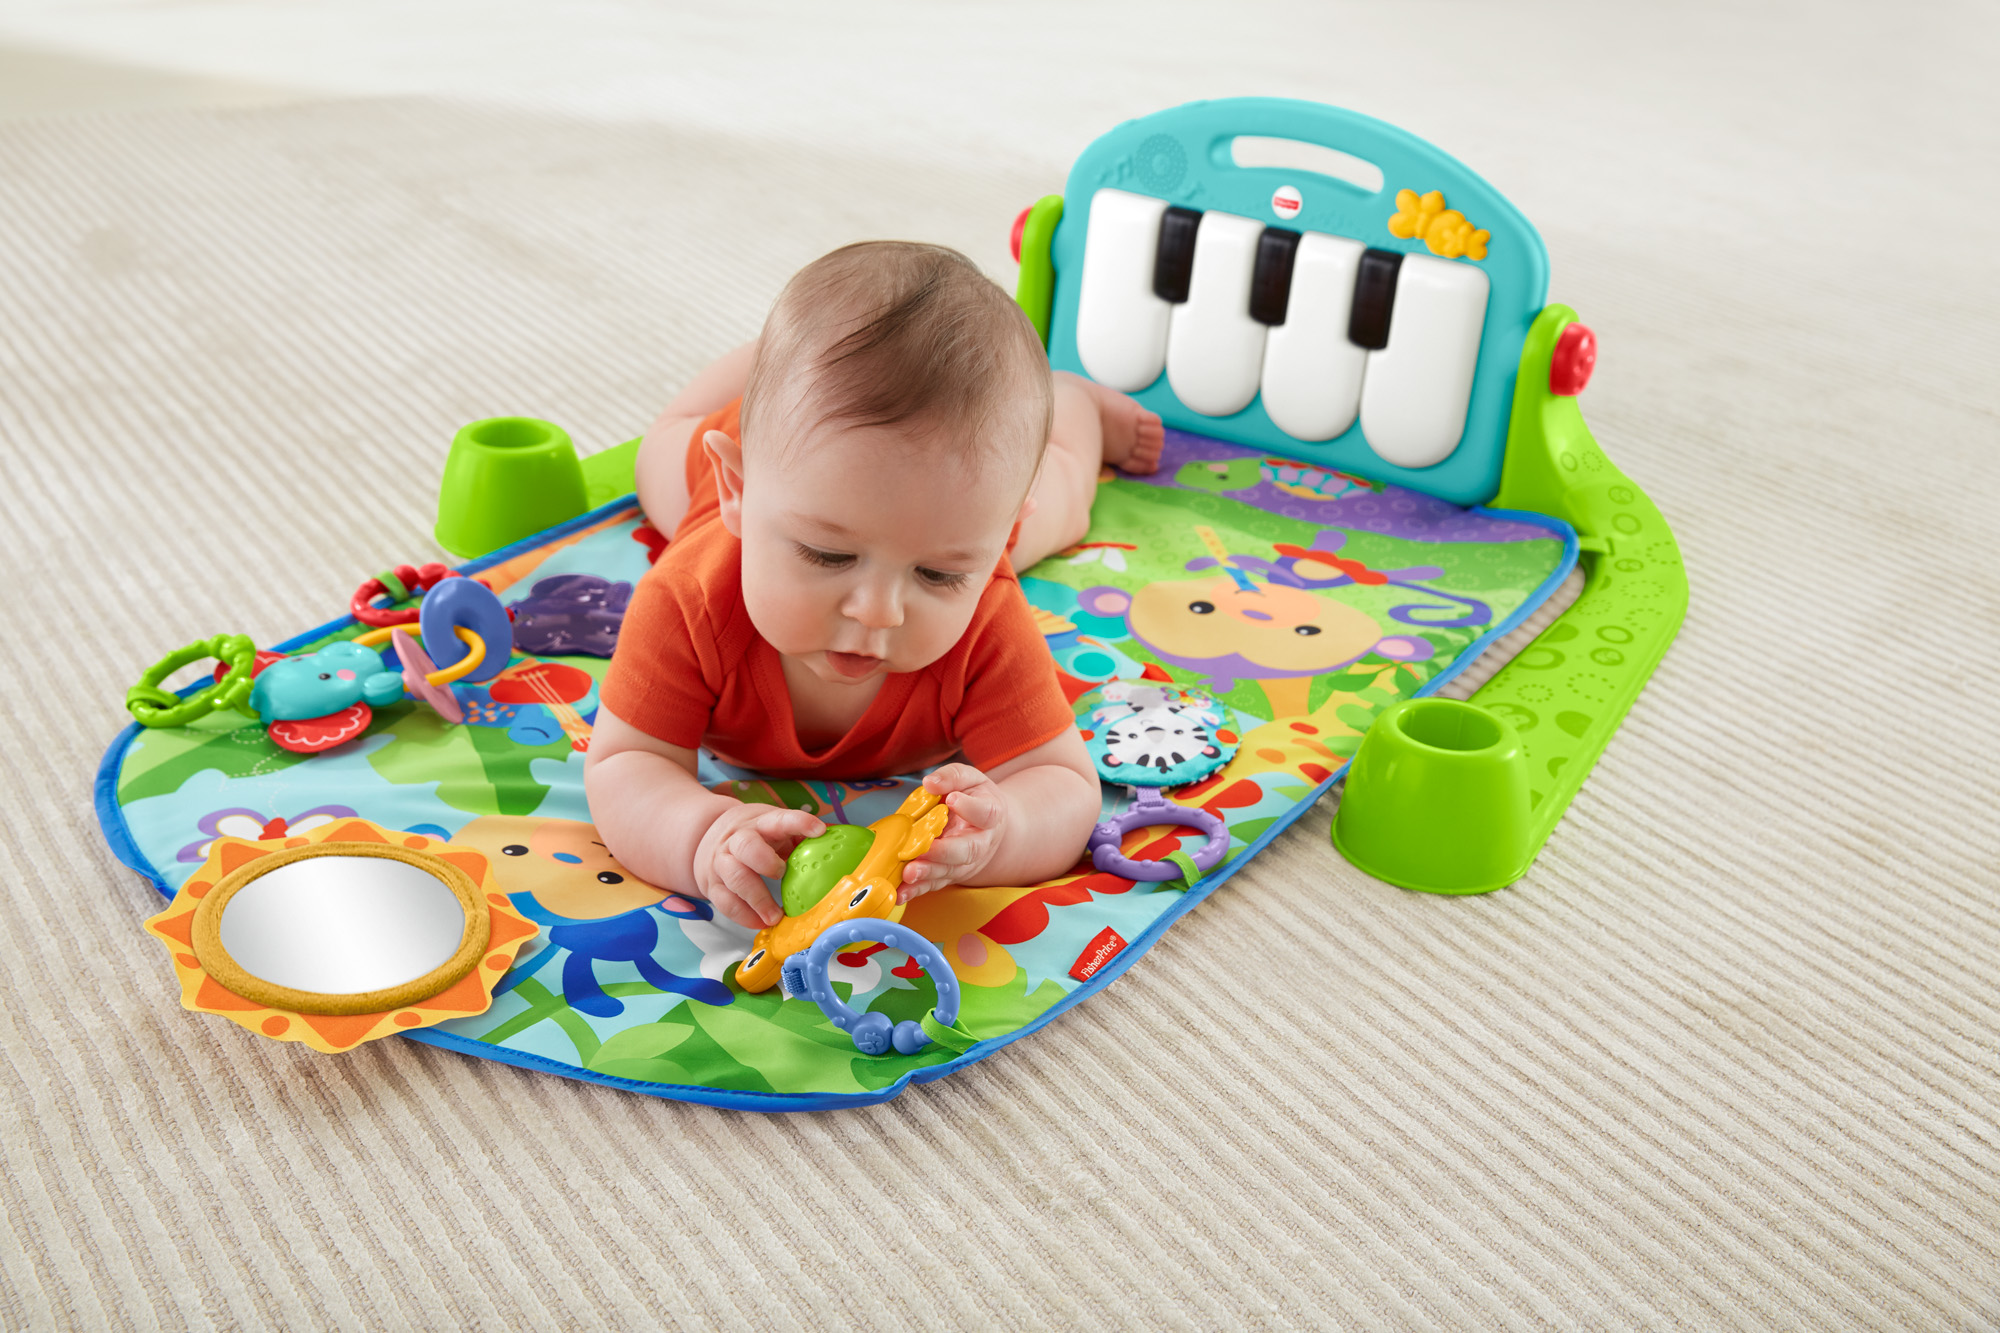 Fisher Price Deluxe Kick and Play Piano Gym 3